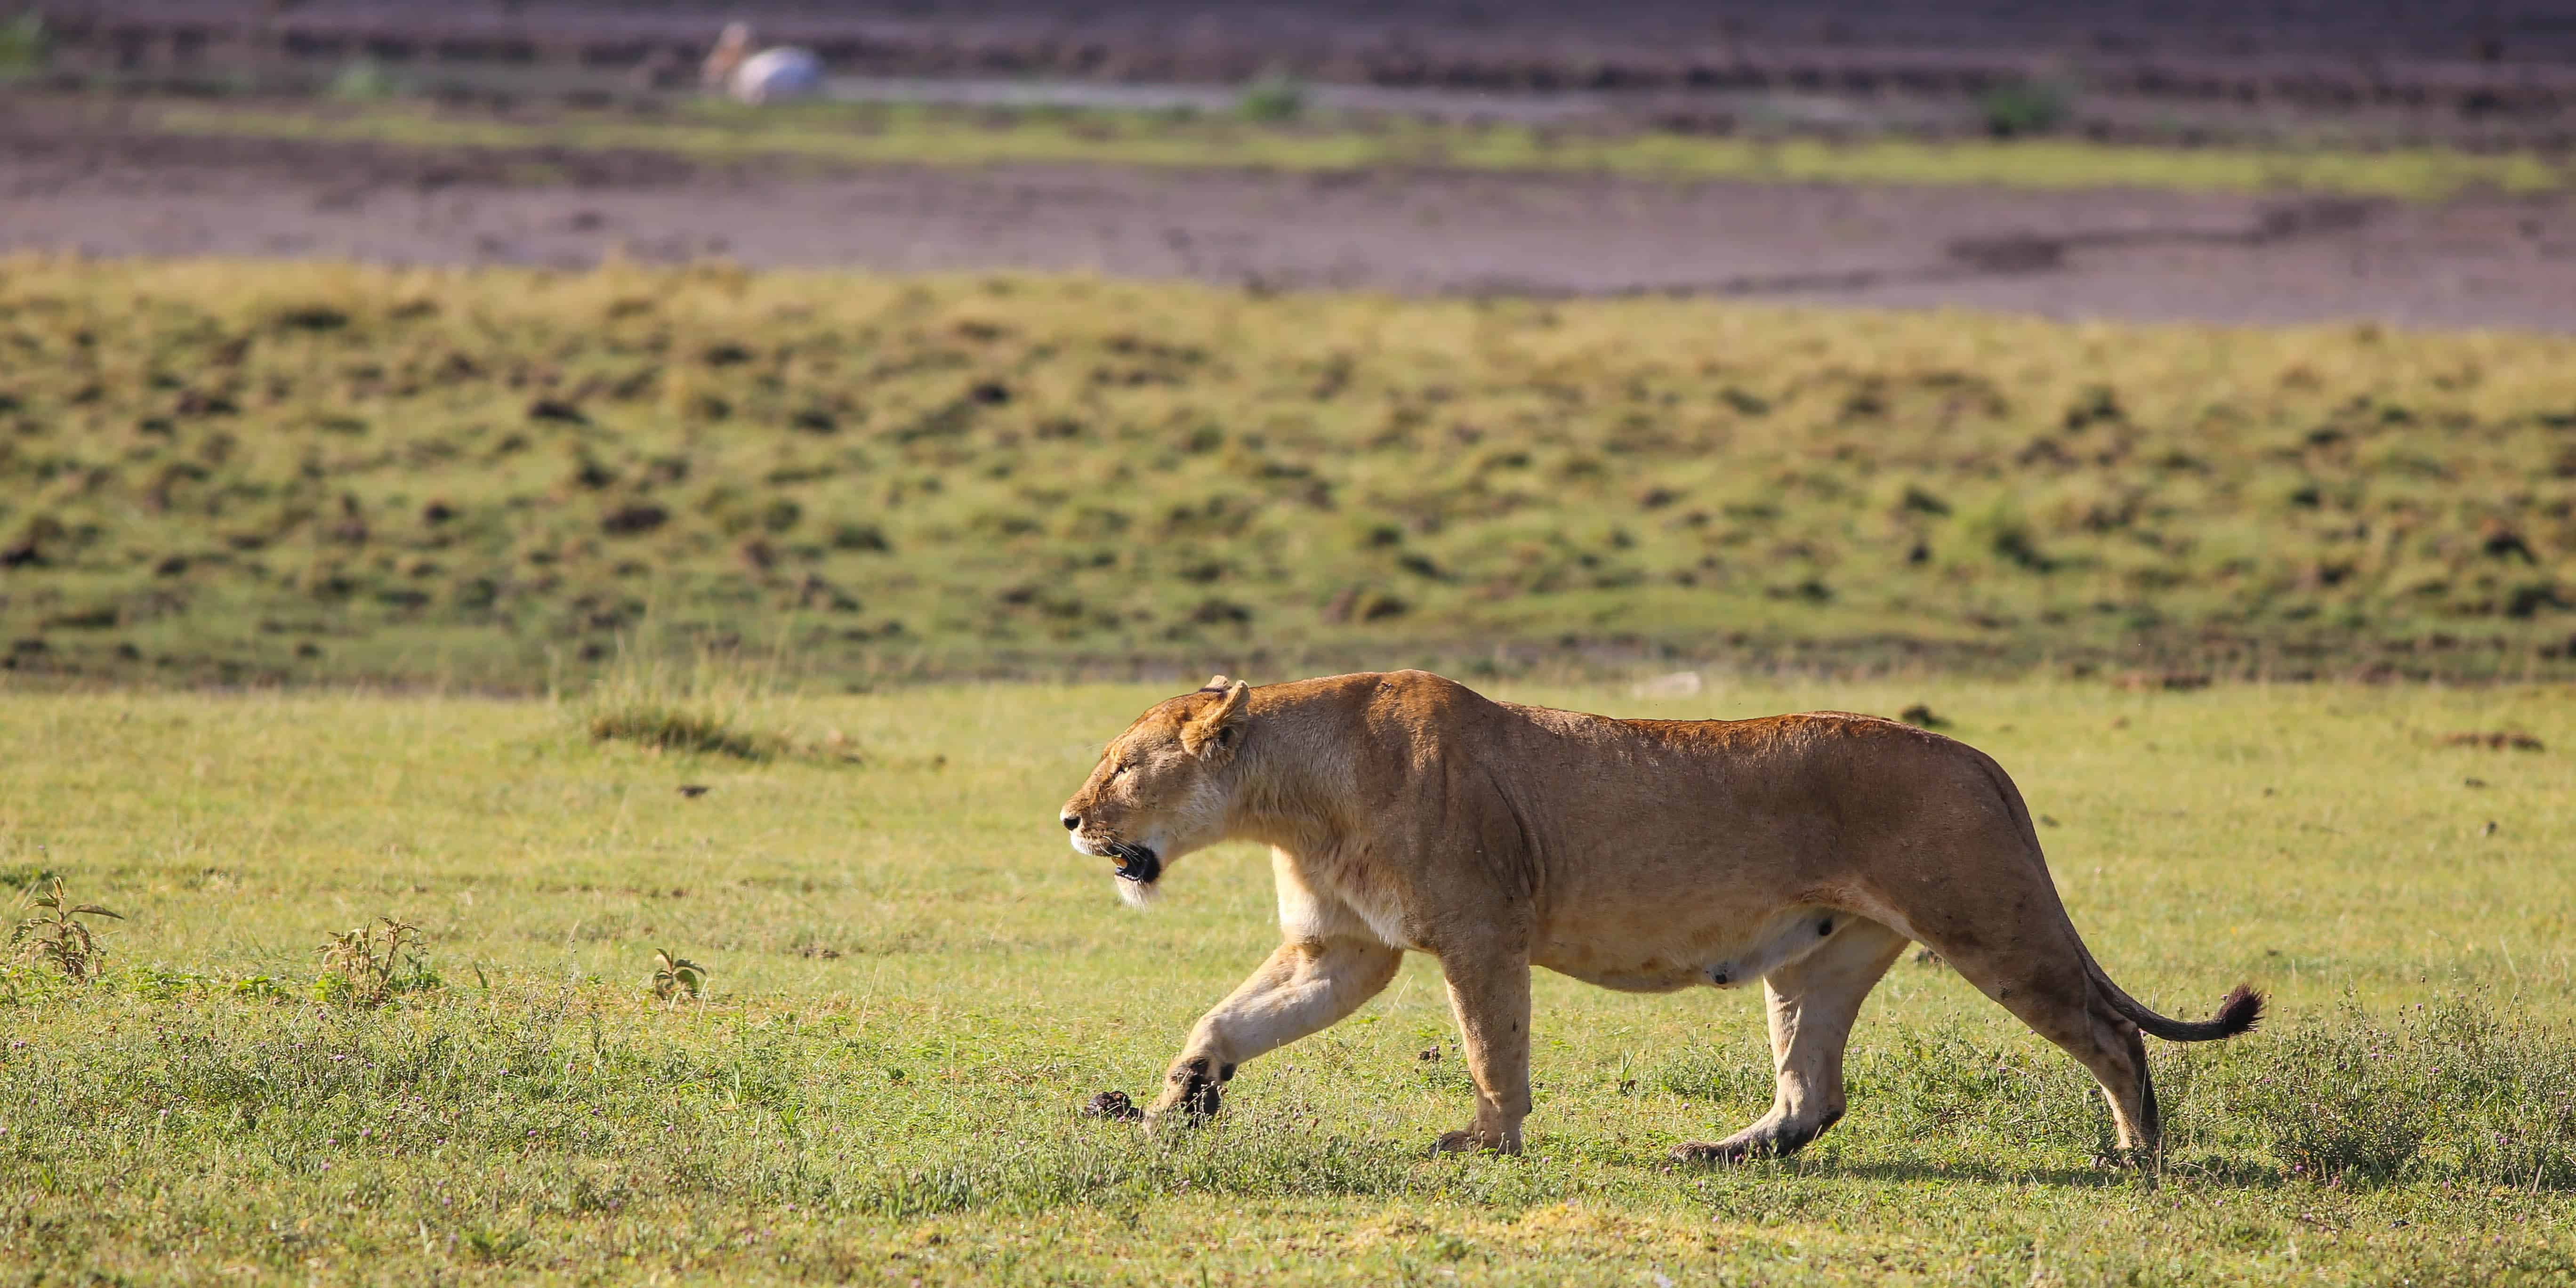 Lioness-on-a-hunt-2